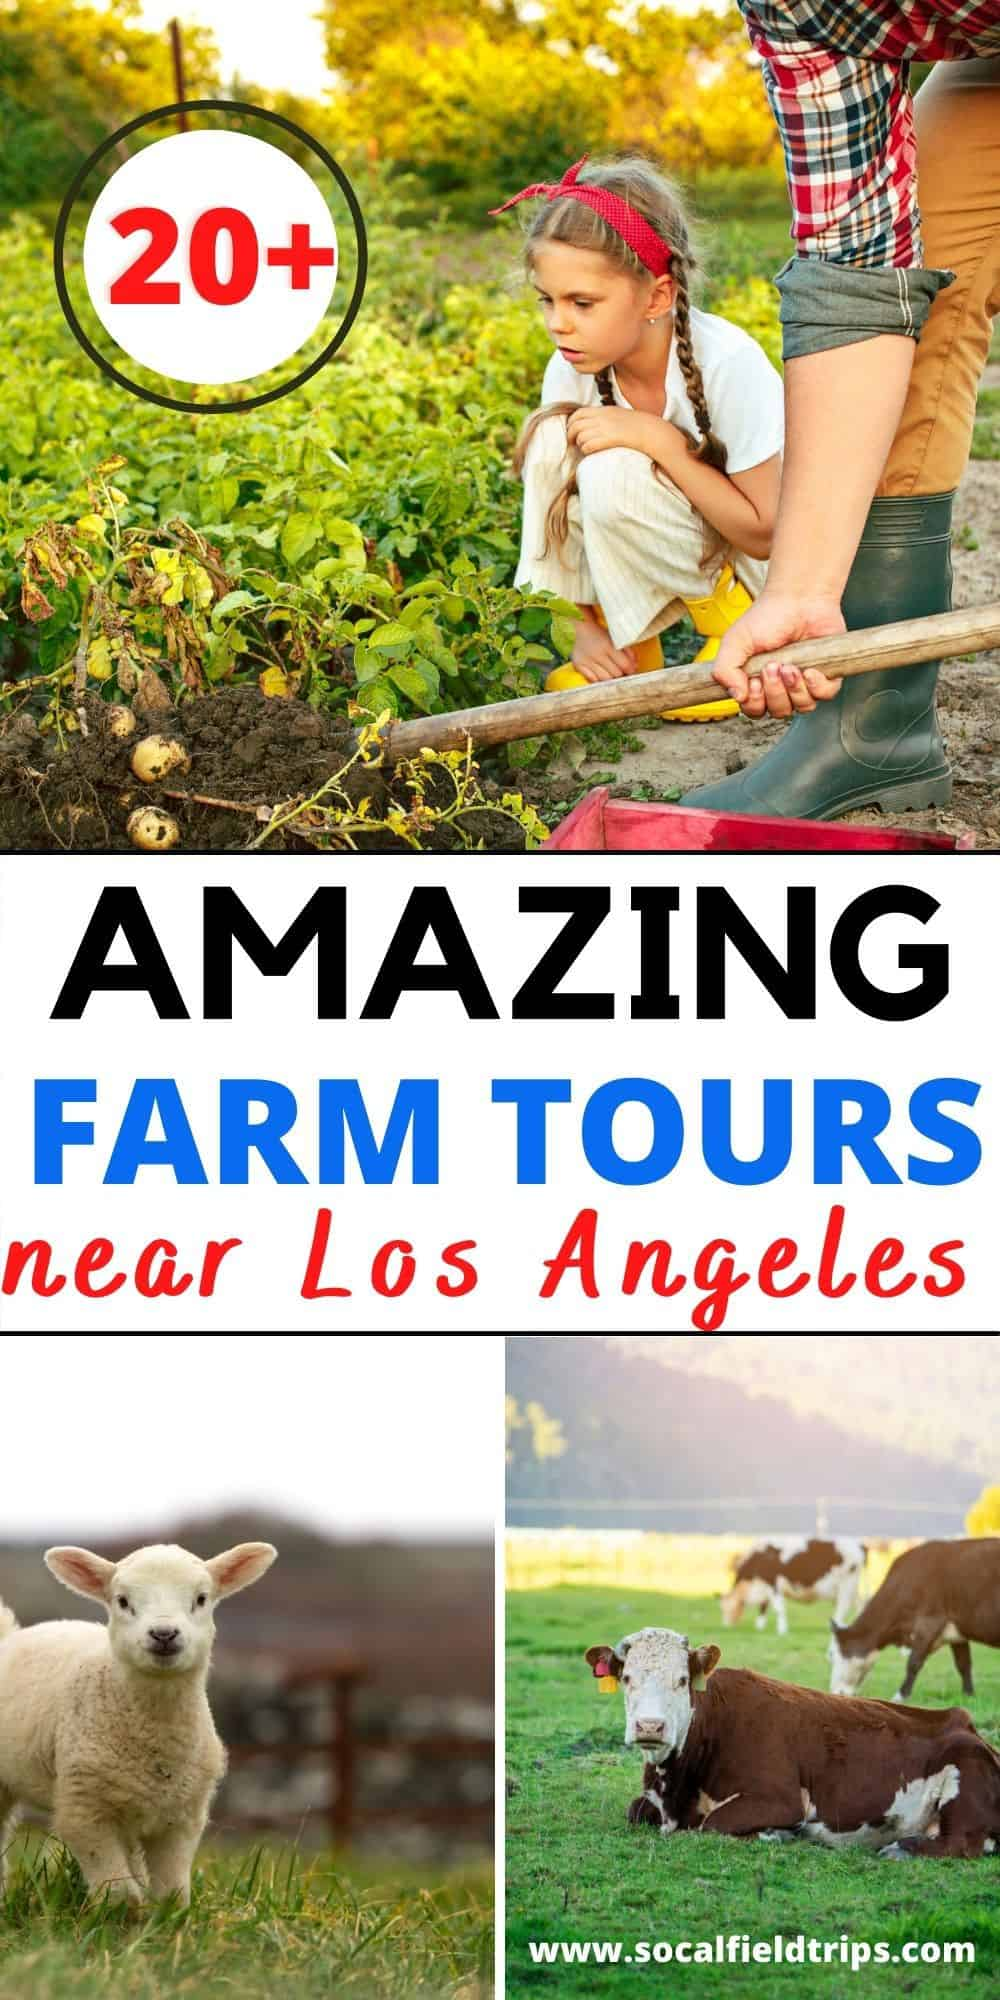 Check out this list of the best family farms near Los Angeles including Ventura, Orange, San Diego, Riverside and Santa Barbara Counties. This is an opportunity for students to learn about a real working farm in their local area.